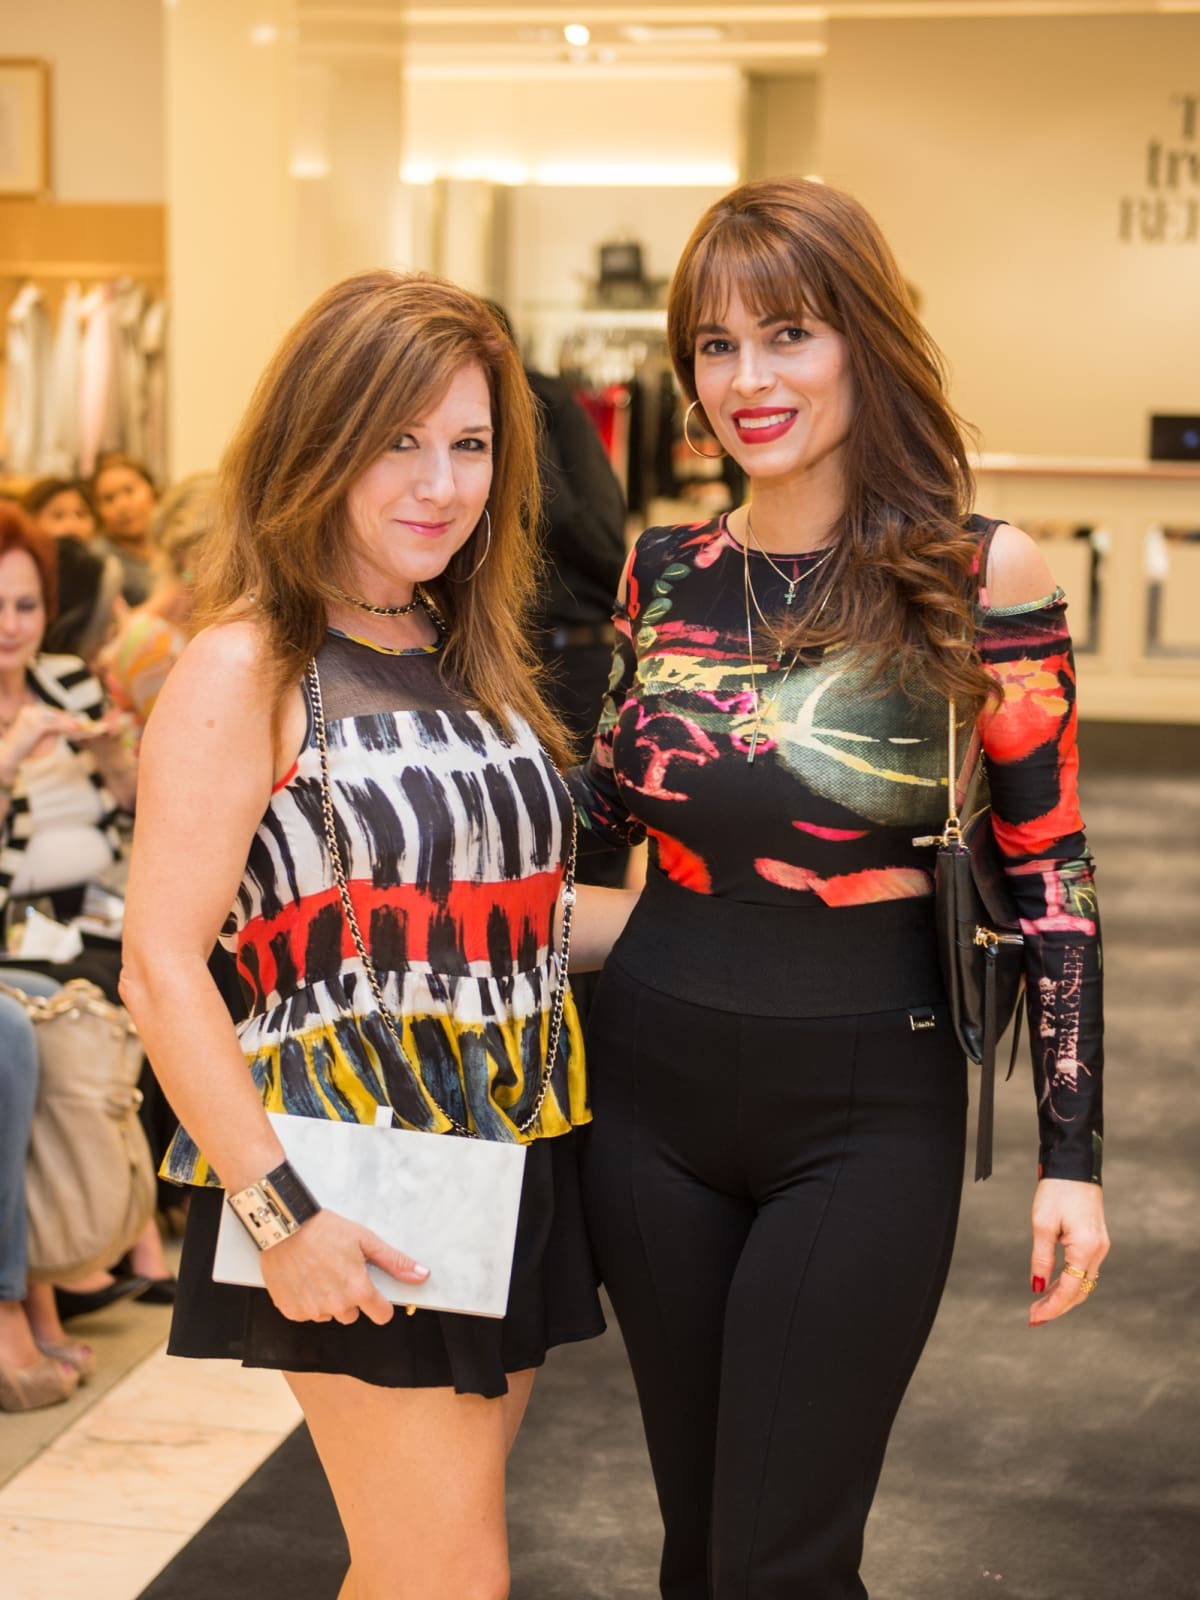 Donae Chramosta and Karina Barbieri at Neiman Marcus Trend Event